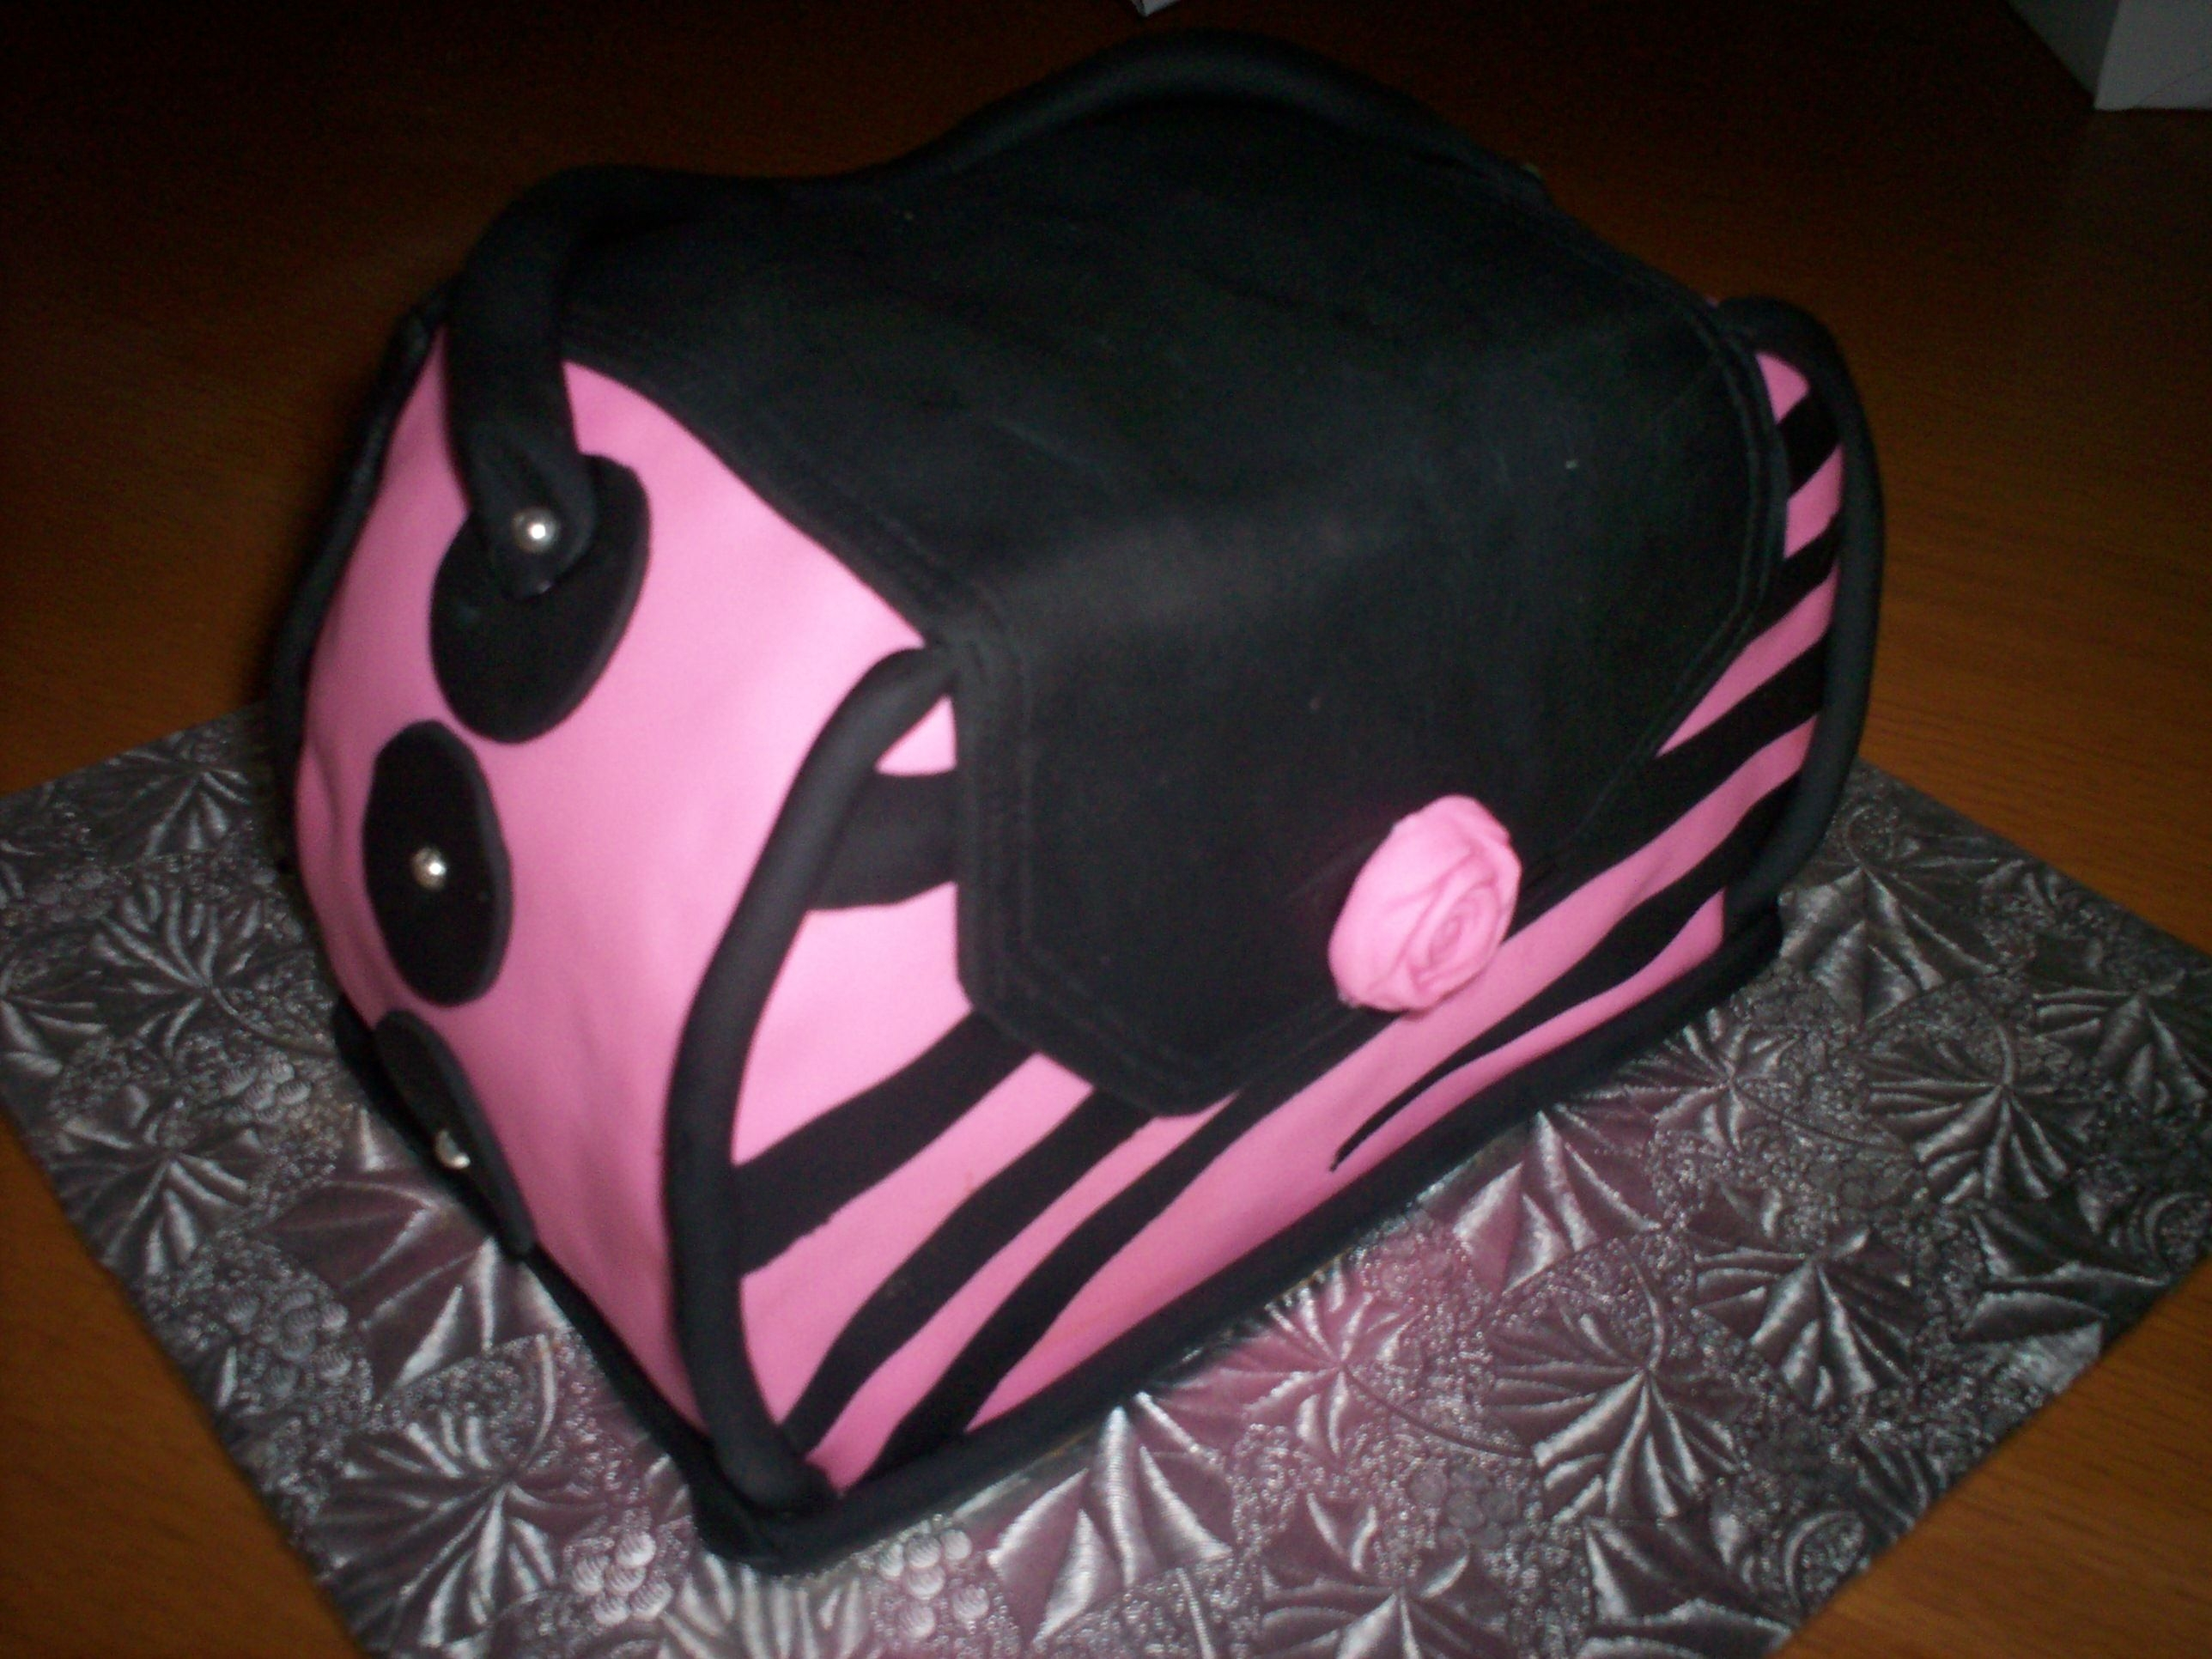 Pink And Black Purse Cake  I made this cake real quick. There was an event and a friend's children's school that I wanted to donate a cake to, but only...